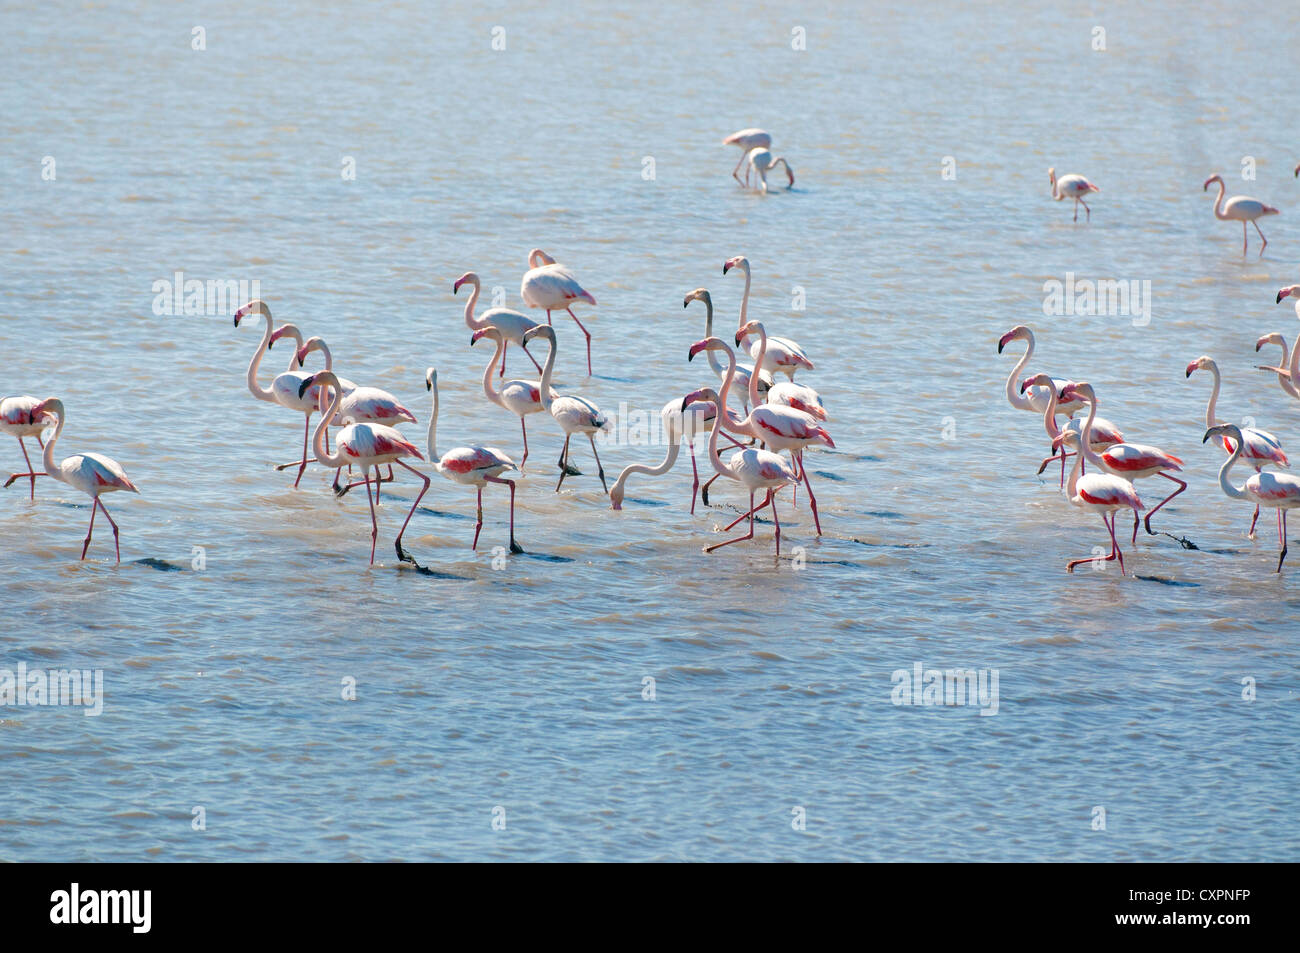 Migratory Pink Flamingoes feeding in The Étang de Vaccarès.-The largest of the salt water lakes in the - Stock Image